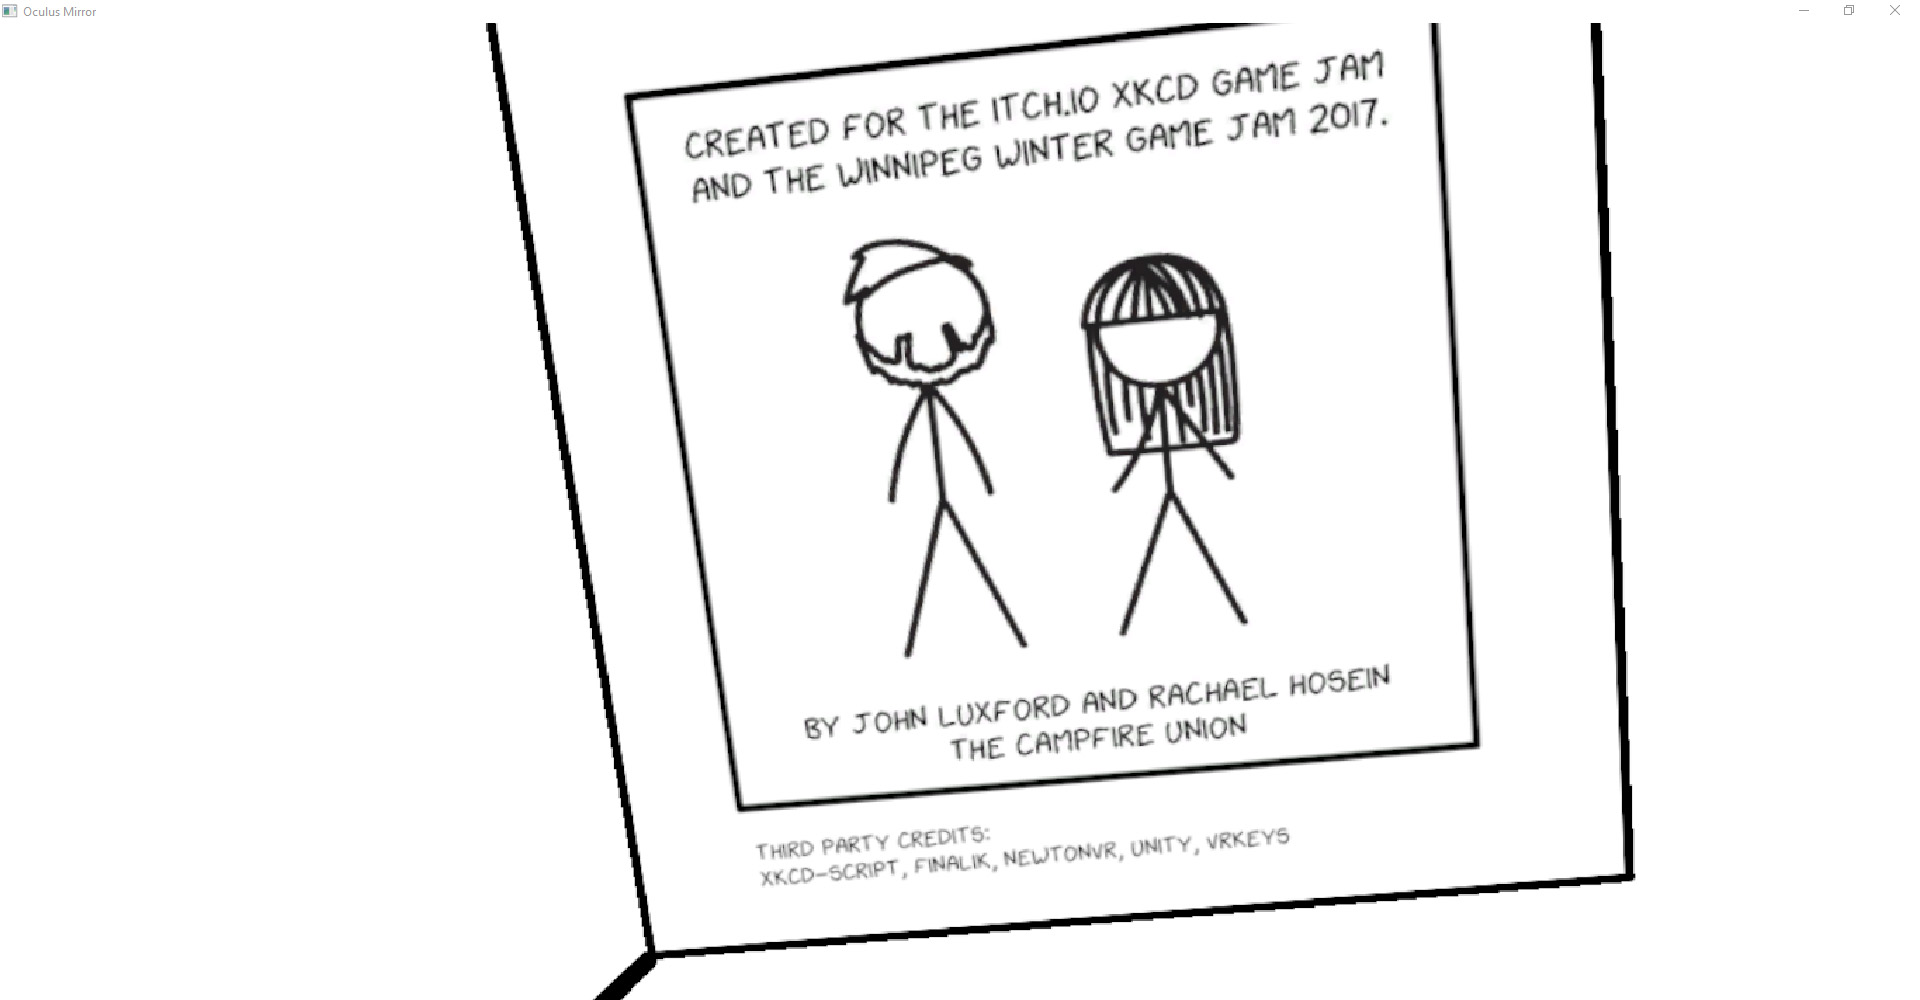 Xkcd VR enter the world of Xkcd comics in virtual reality The